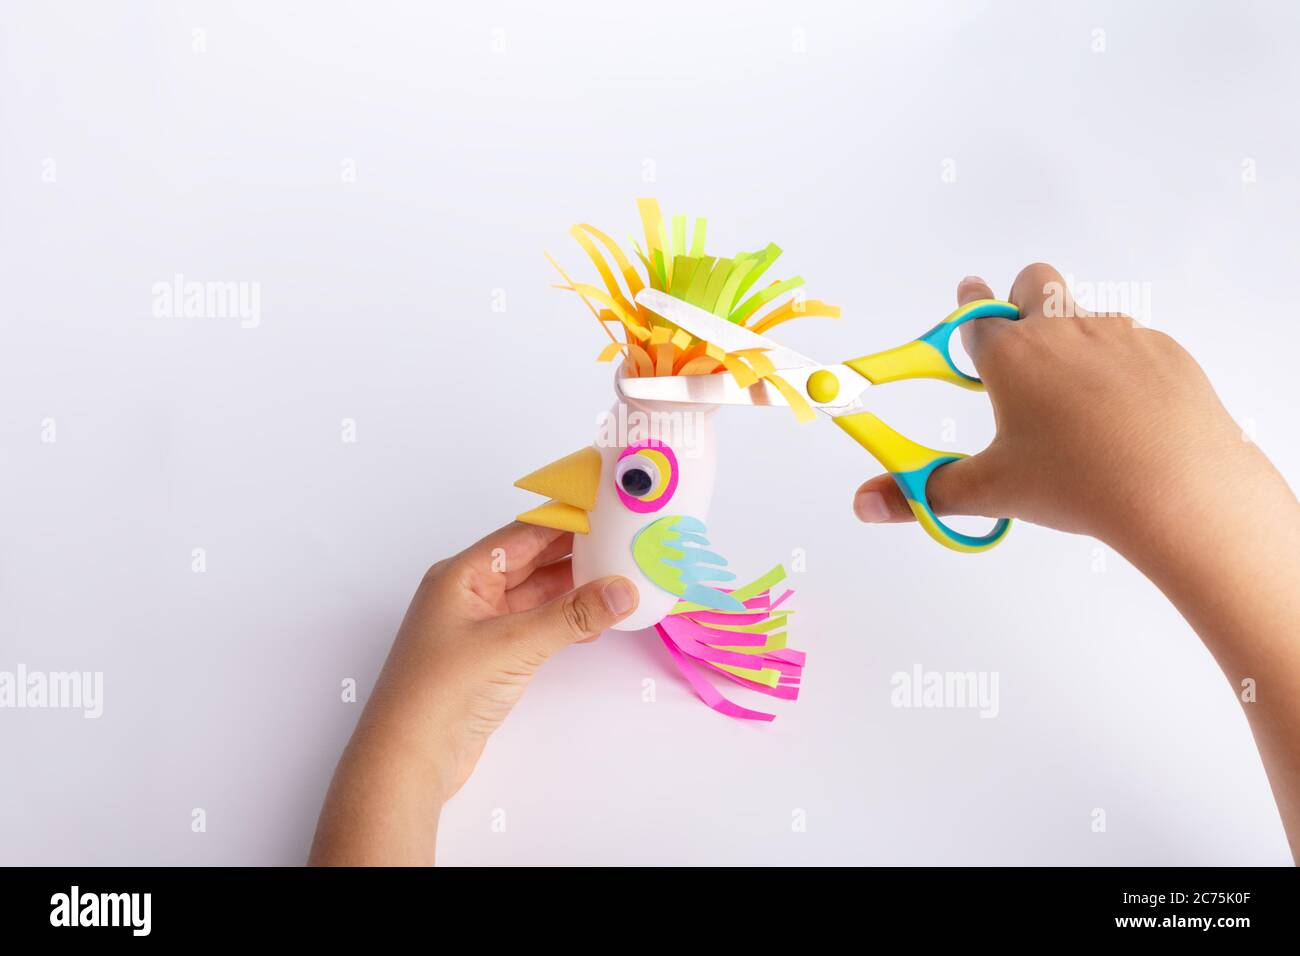 Child Makes A Parrot Craft From Paper And Recycled Yogurt Bottle Diy Kindergarten Or School Children Activity Funny Bird Craft For Kids Stock Photo Alamy